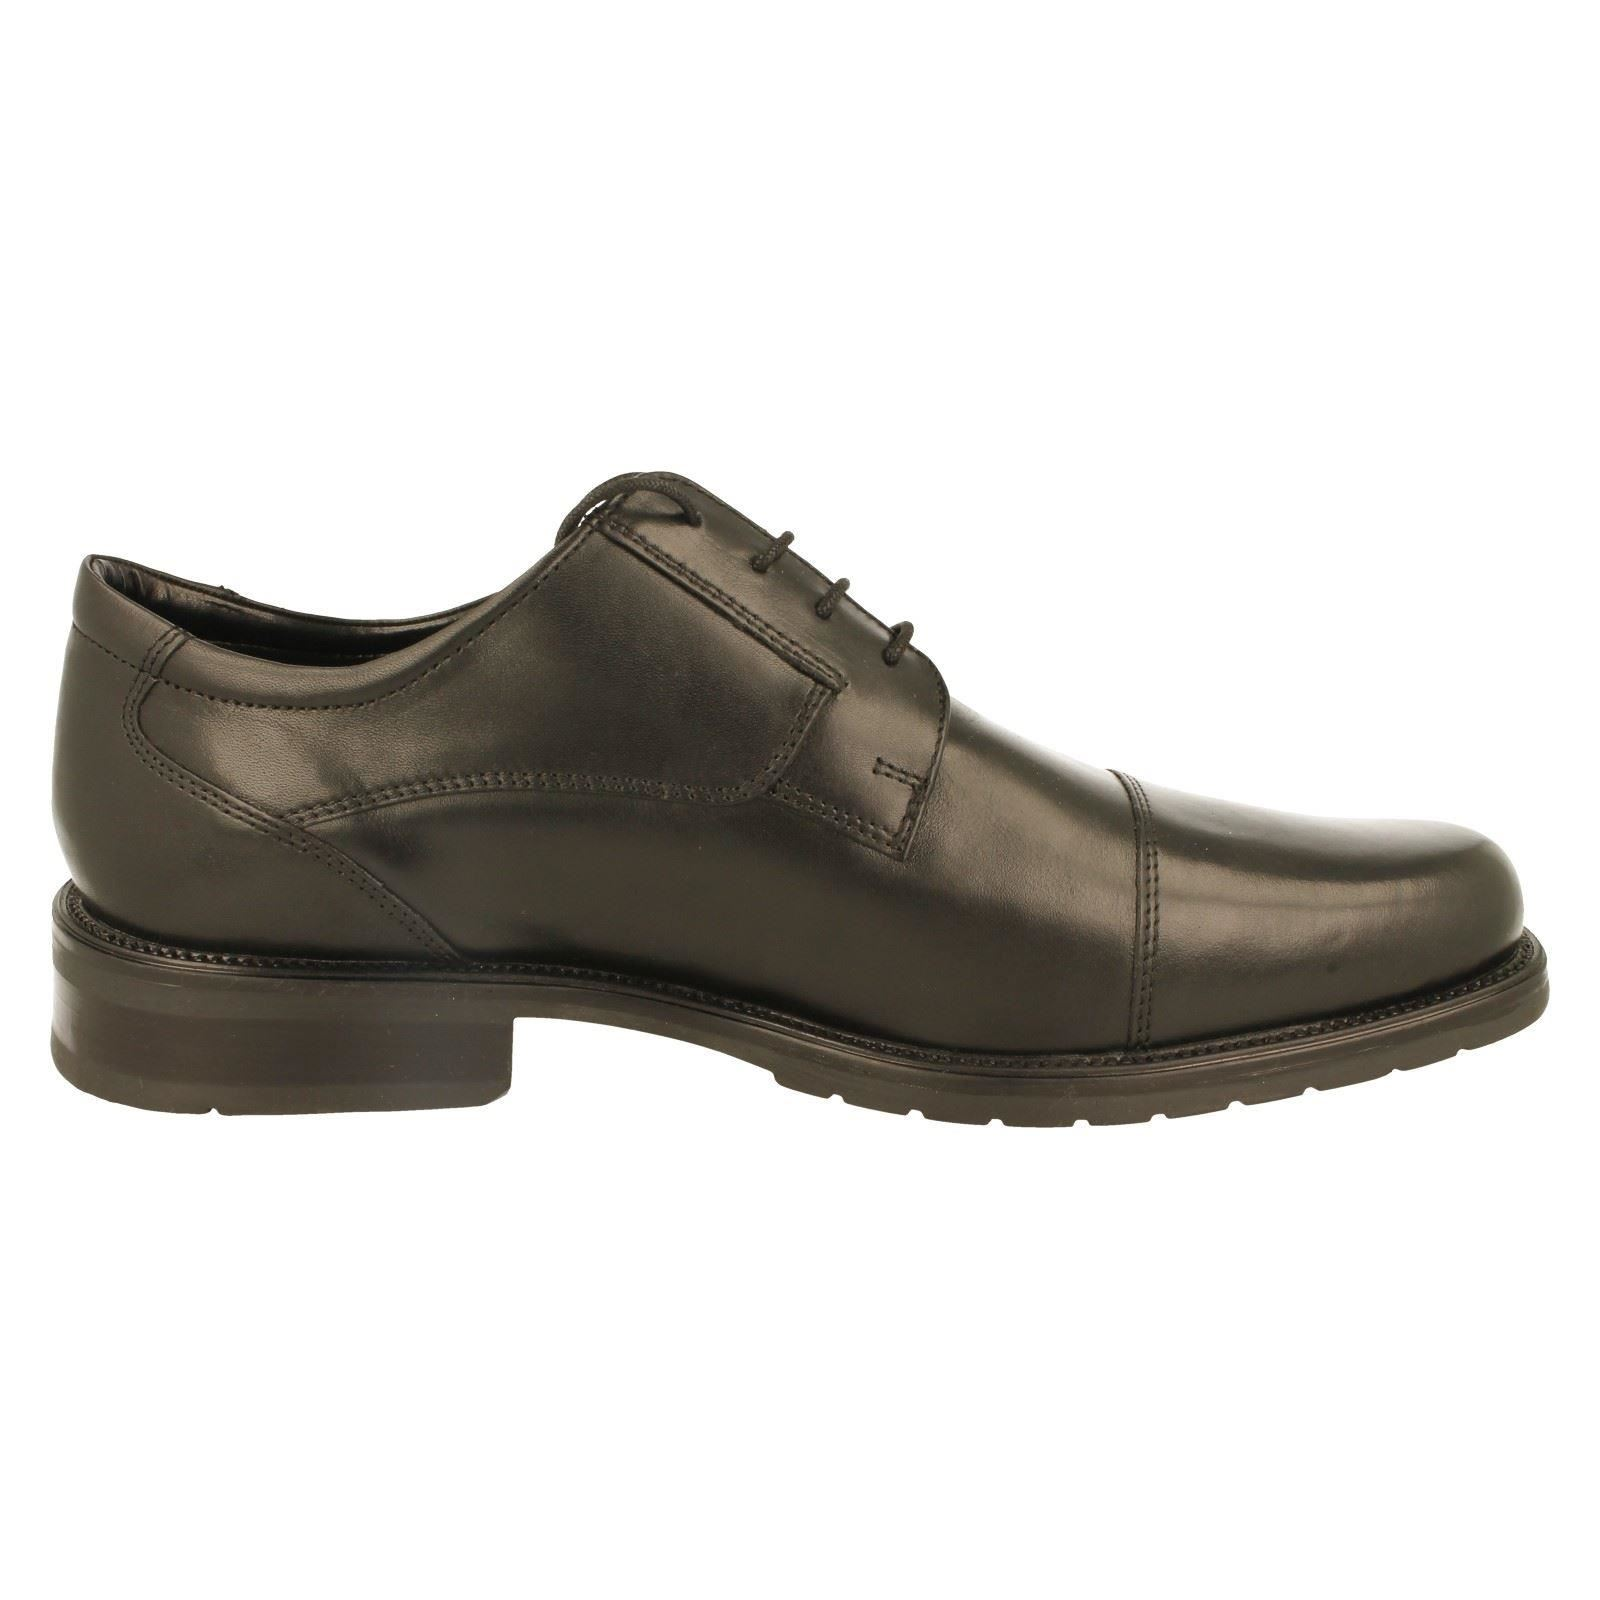 Uomo Clarks Formal Act Lace-Up Schuhes, Label Breech Act Formal -w 3912bb